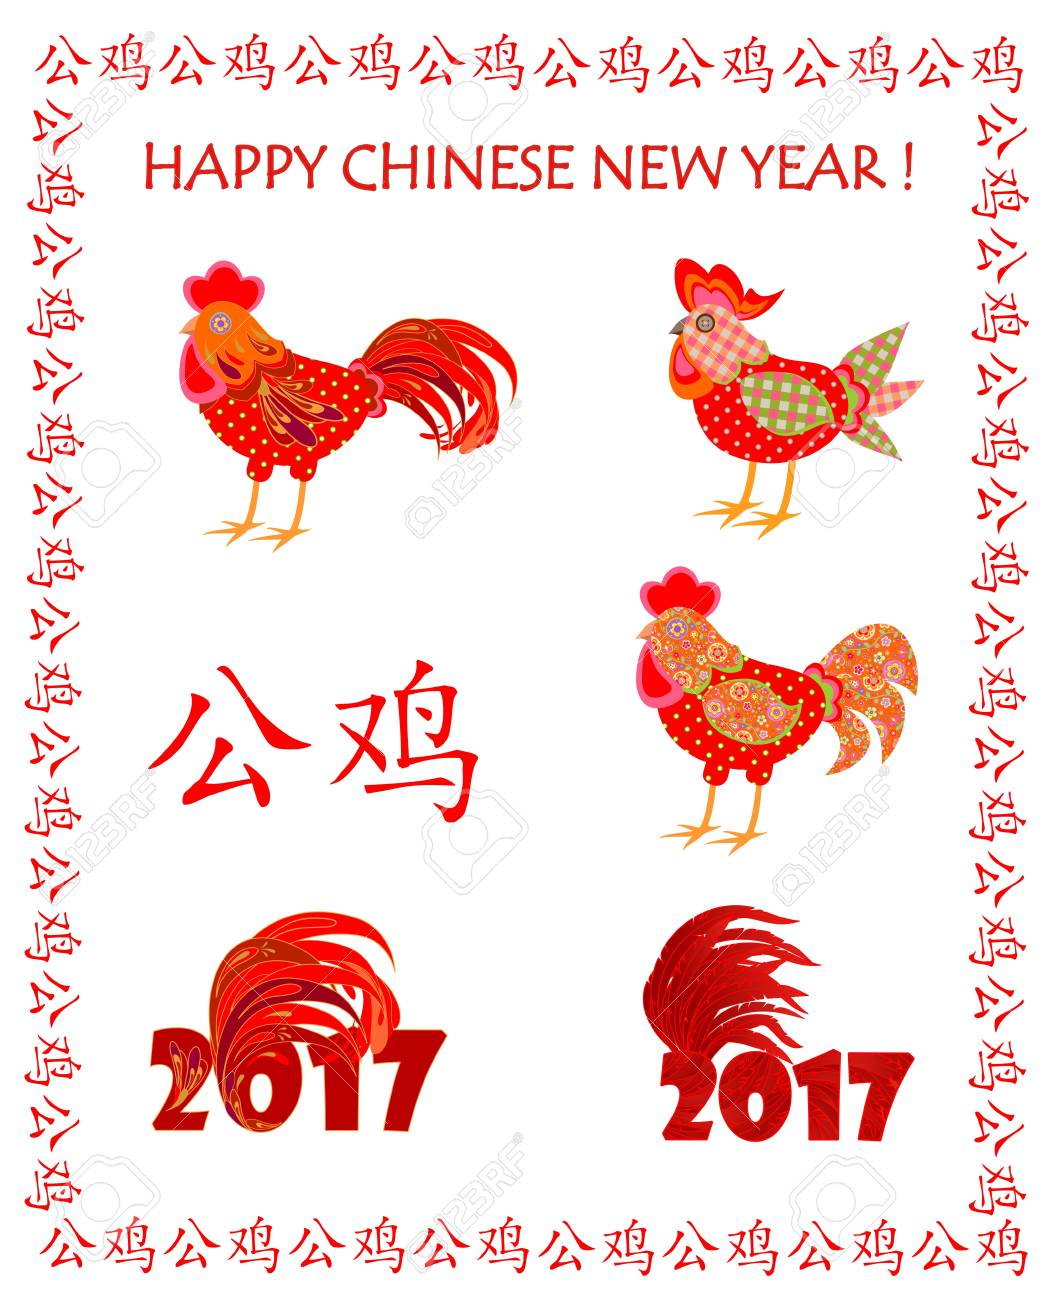 Greeting For 2017 Chinese New Year With Funny Roosters Royalty Free ...